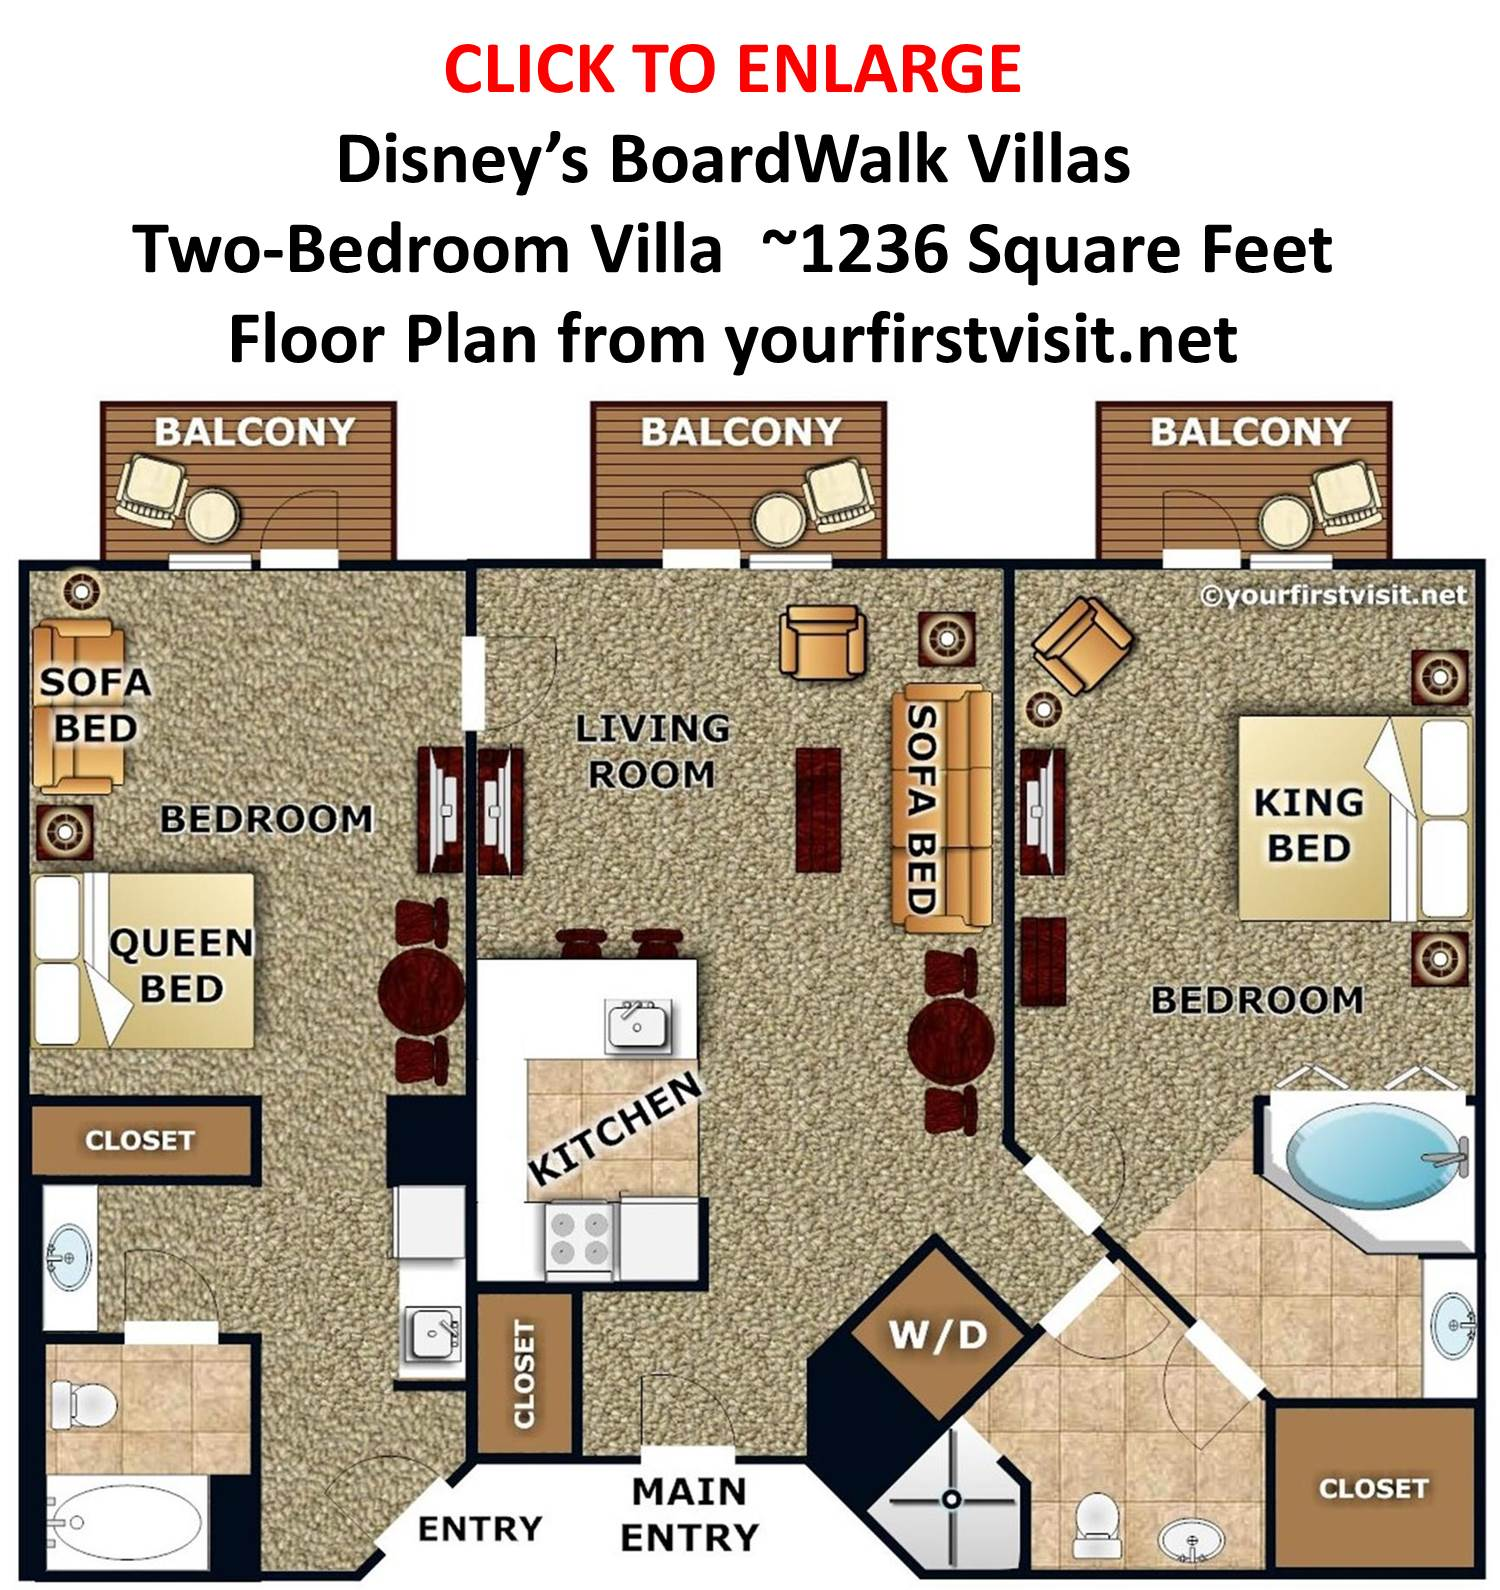 2 bedroom villas at disney world